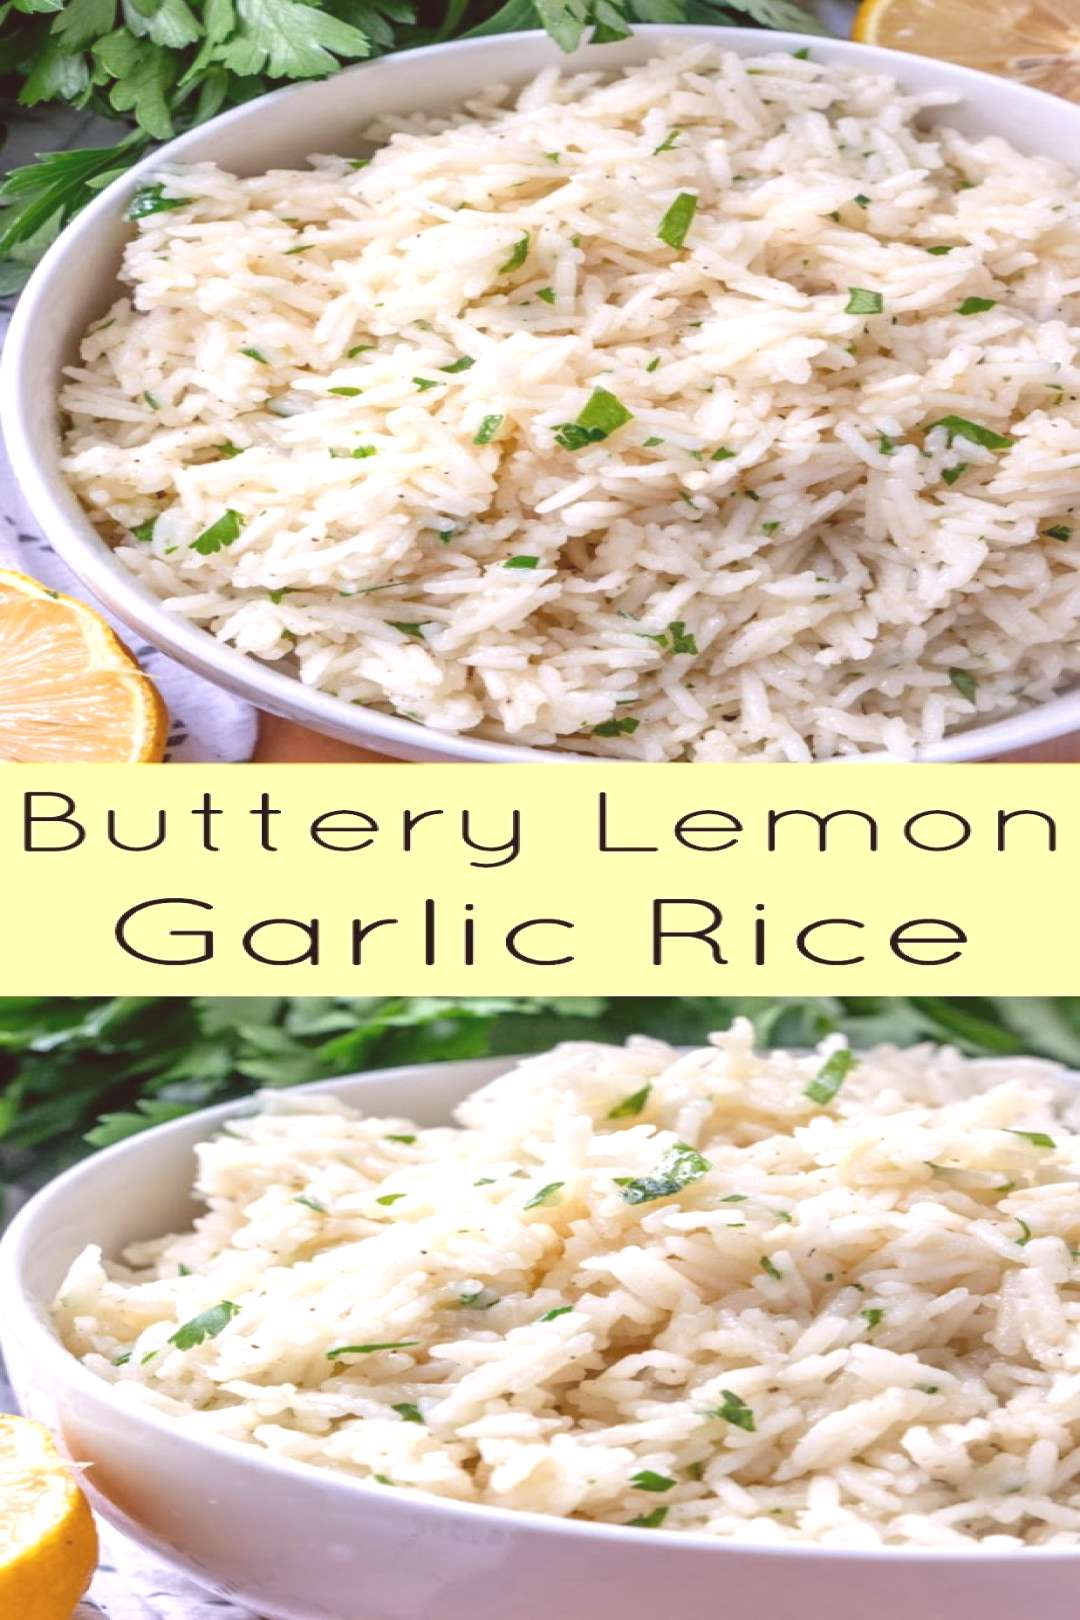 Buttery Lemon Garlic Rice A delicious side dish that goes with almost any meal! Ready in 20 minutes